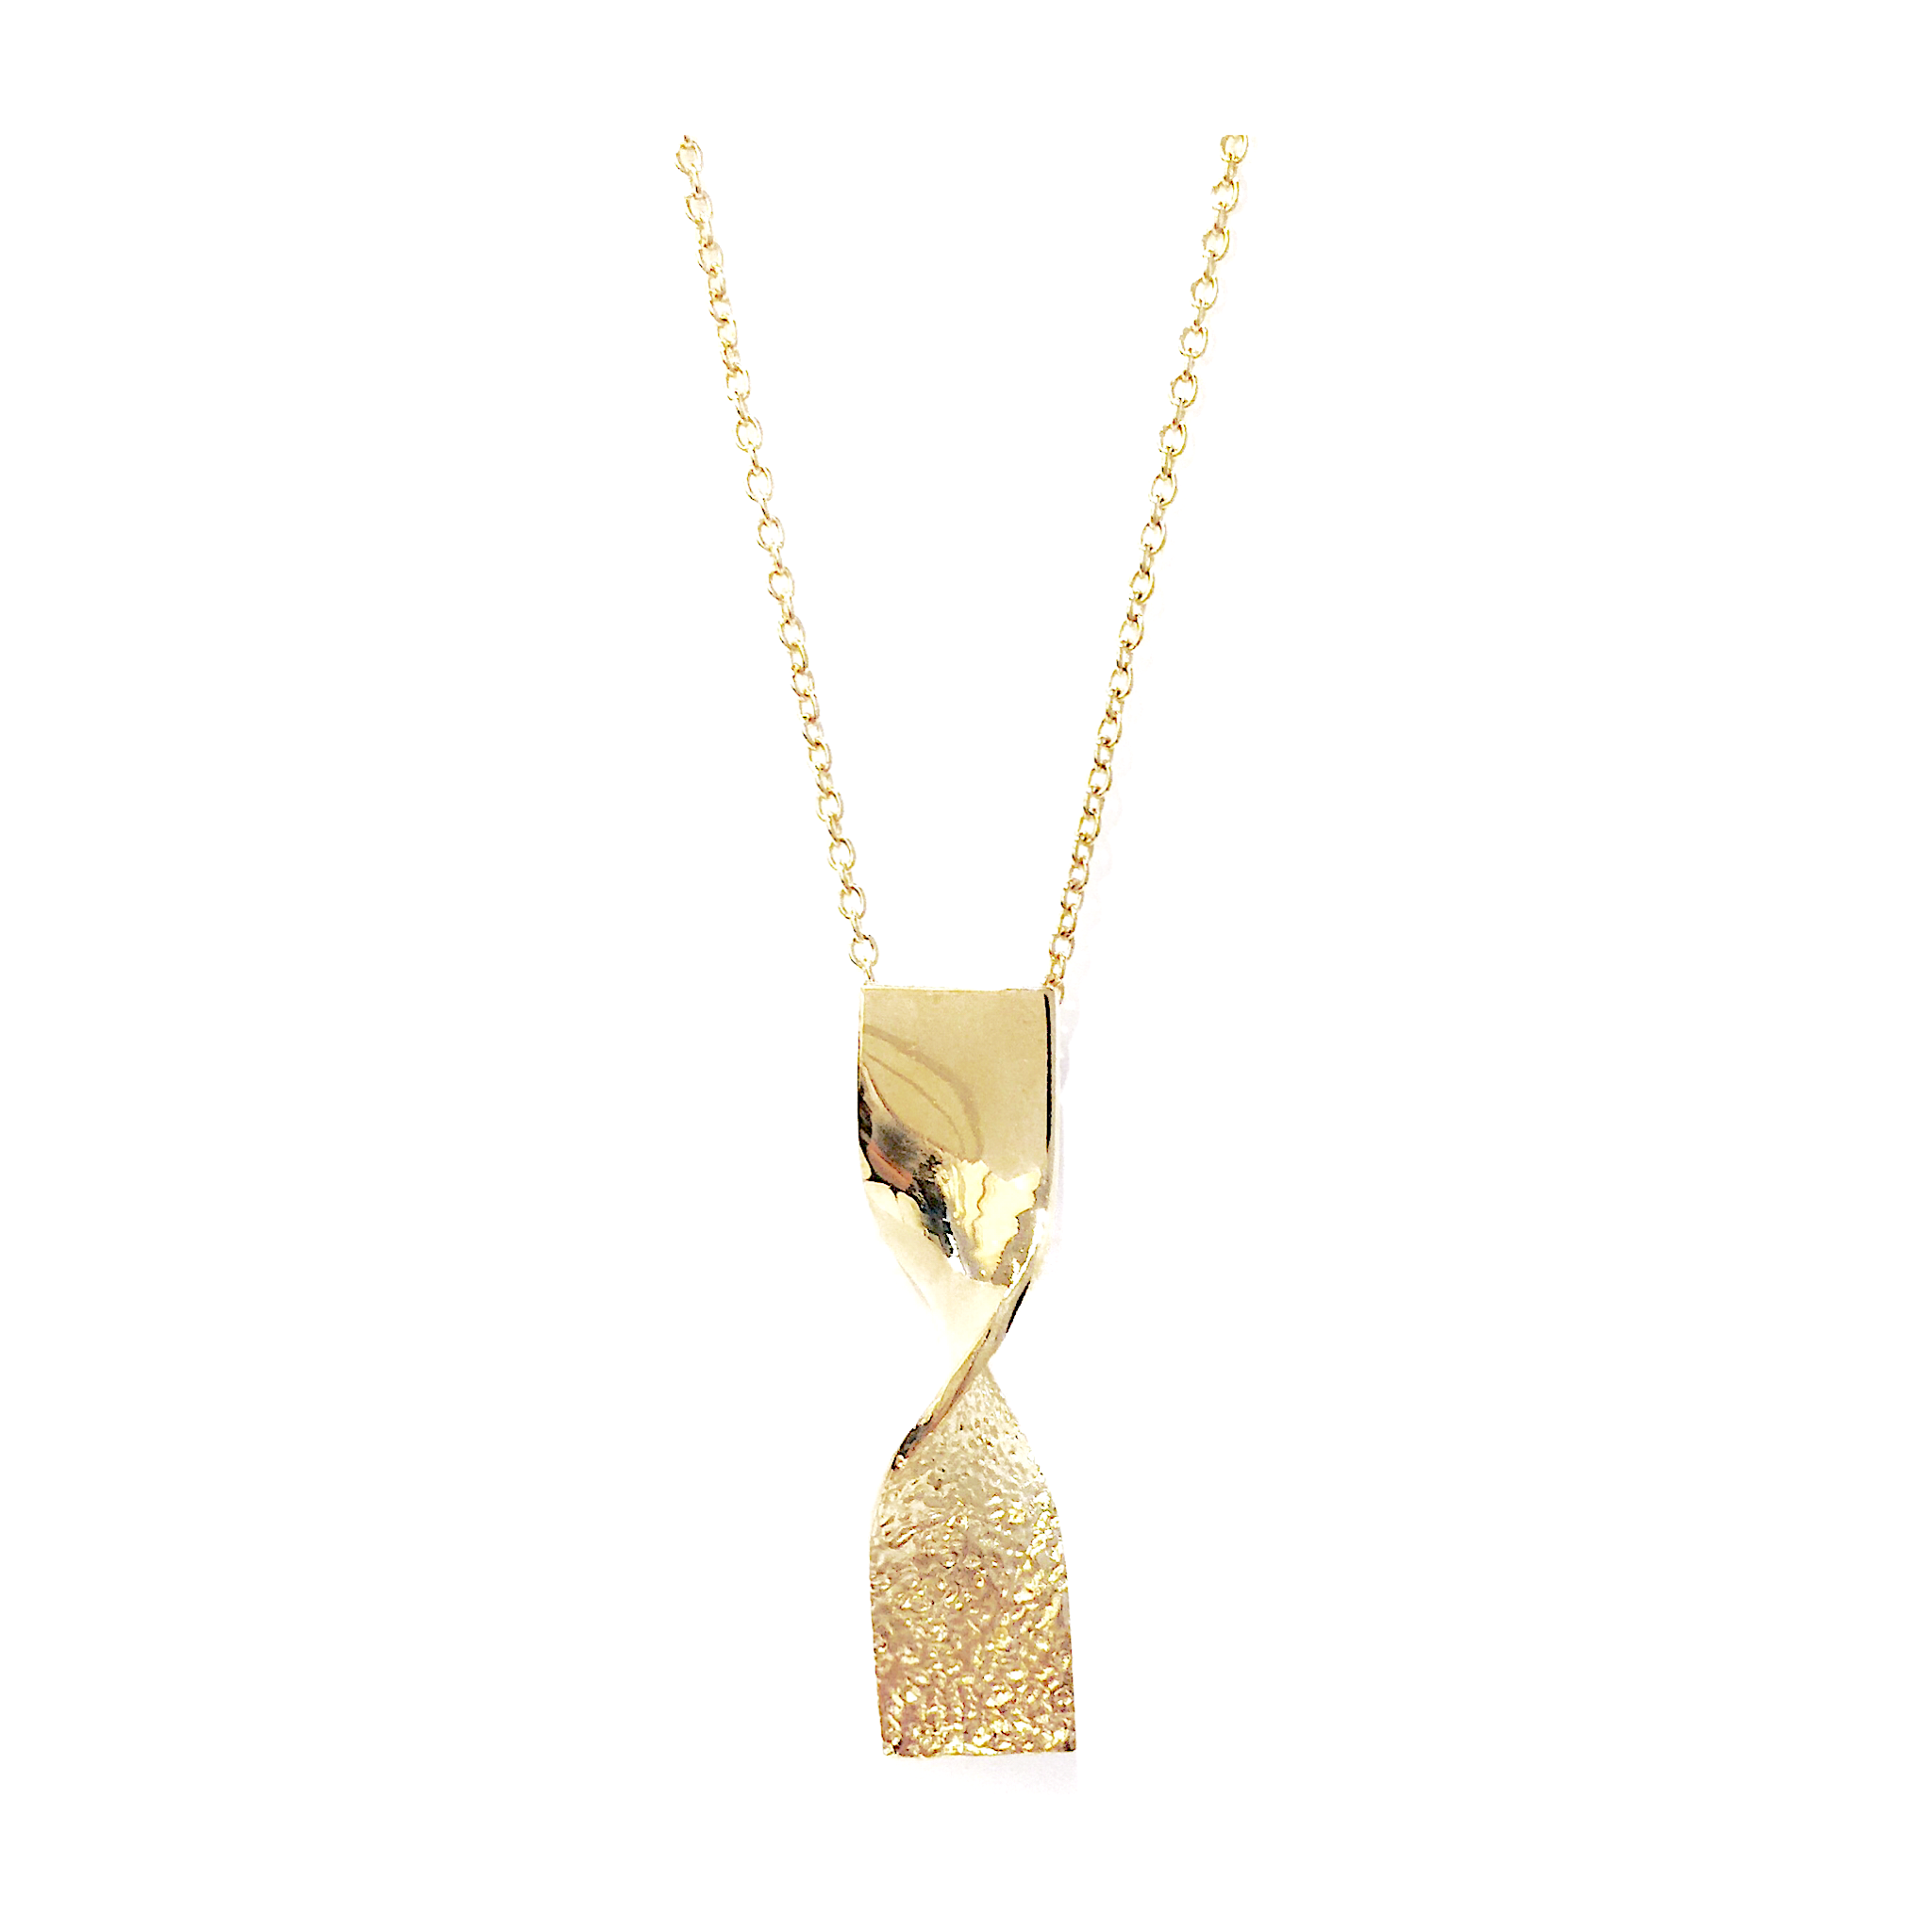 claire s wood necklace bar pendant us